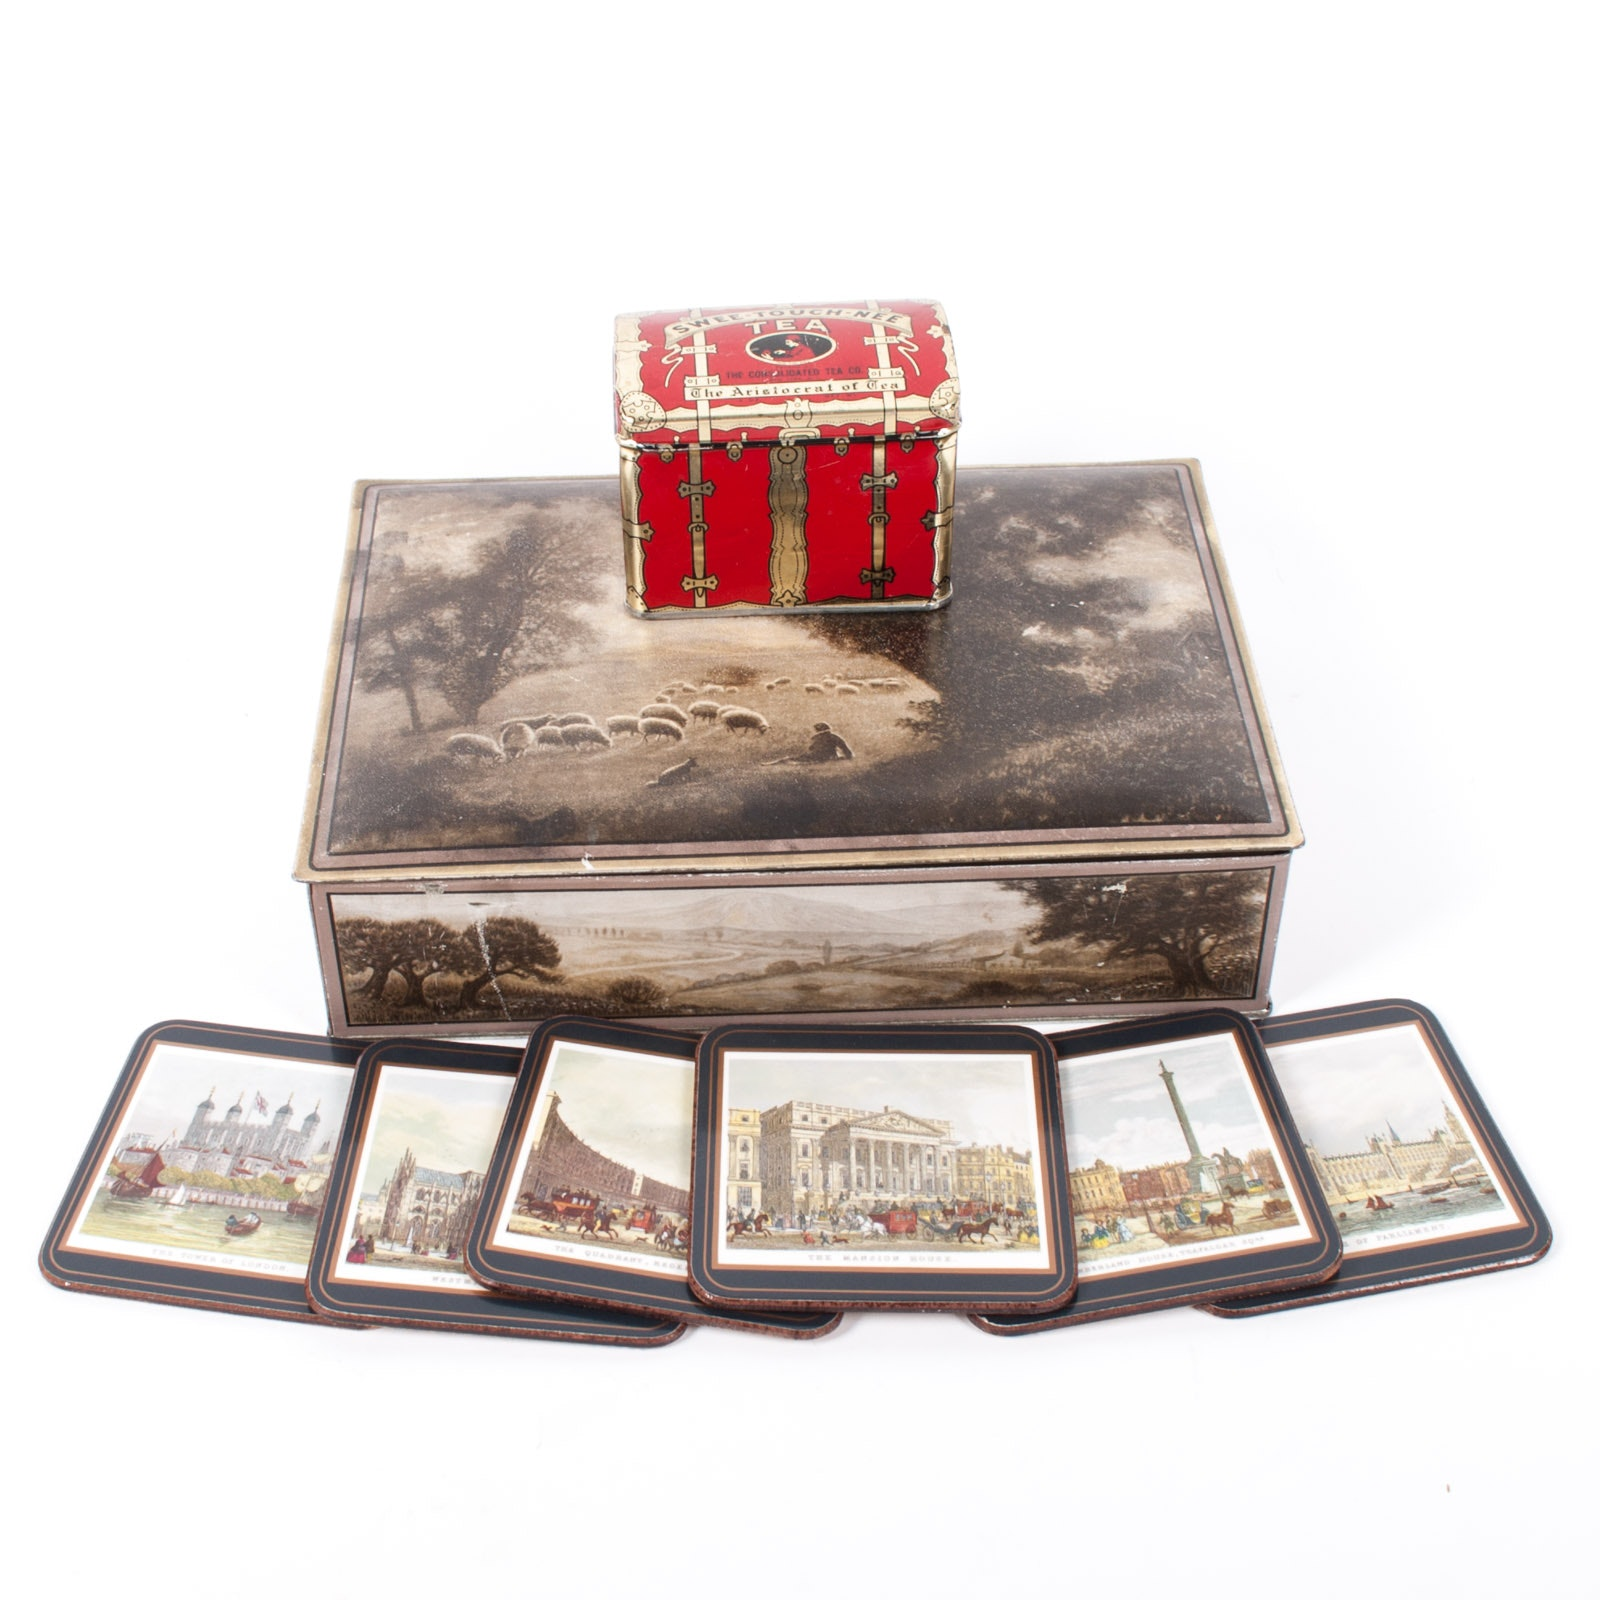 Uneeda Biscuit Tin with Swee-Touch-Nee Tea Tin and PImpernel Coasters